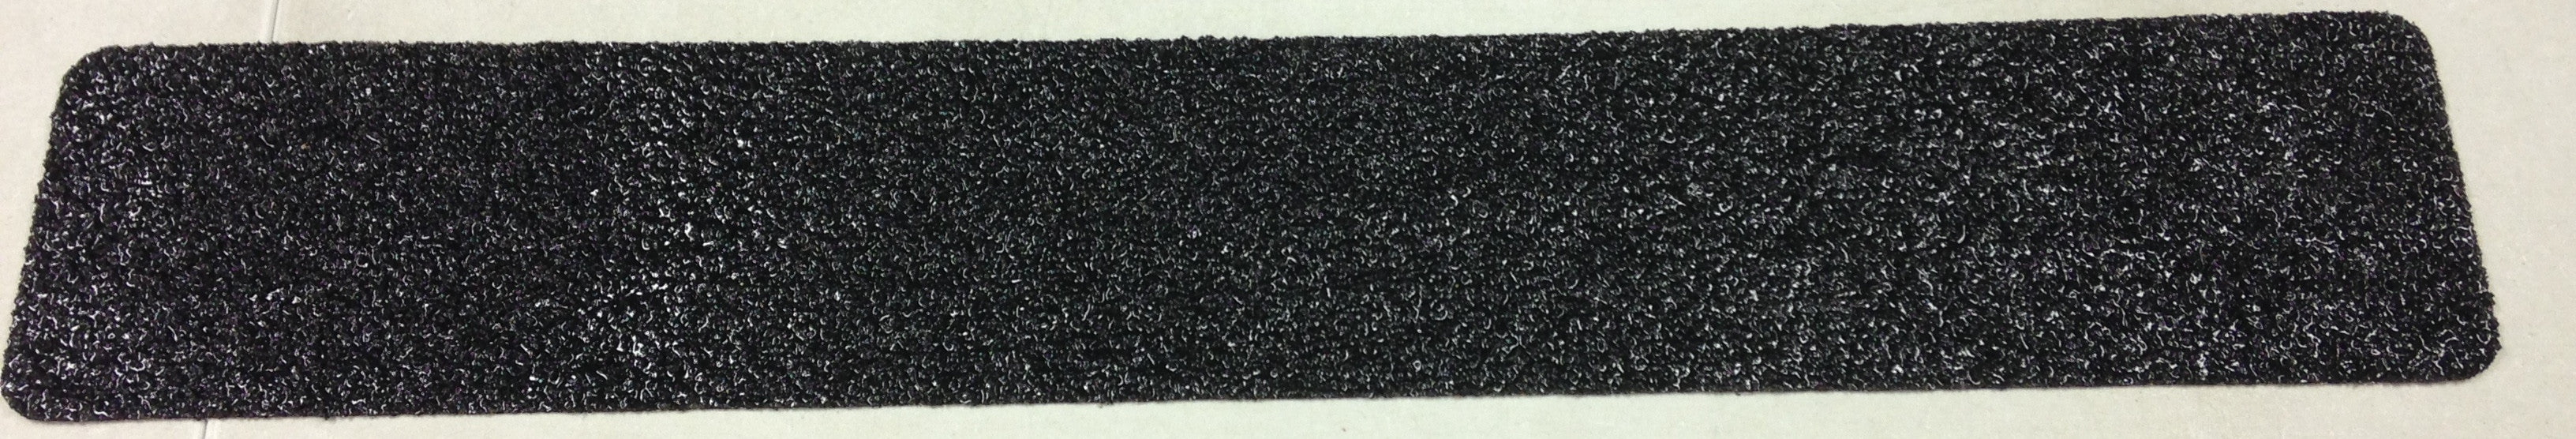 "6"" X 24"" Tread BLACK Extreme Tape Heavy Duty Grit - Pkg of 12 - 10 Day Processing"